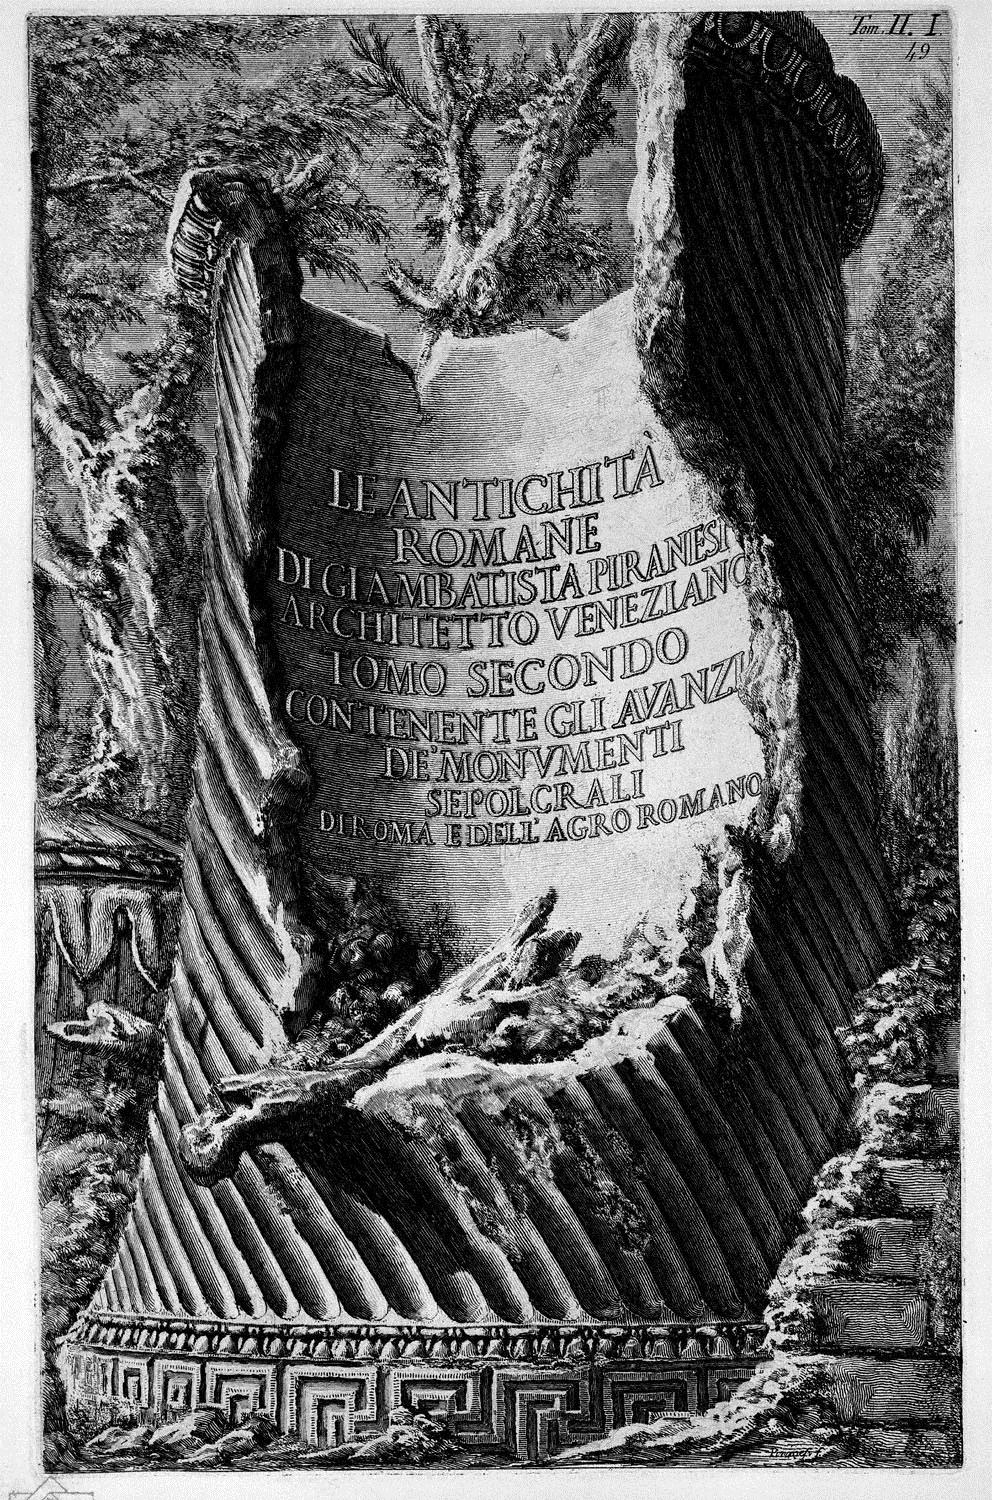 The Roman antiquities, t. 1, Plate XLVI. Plan of the lower part of the `Palace of the Caesars believed the Baths Palatine (Drawing and inc. By Francesco Piranesi), 1756